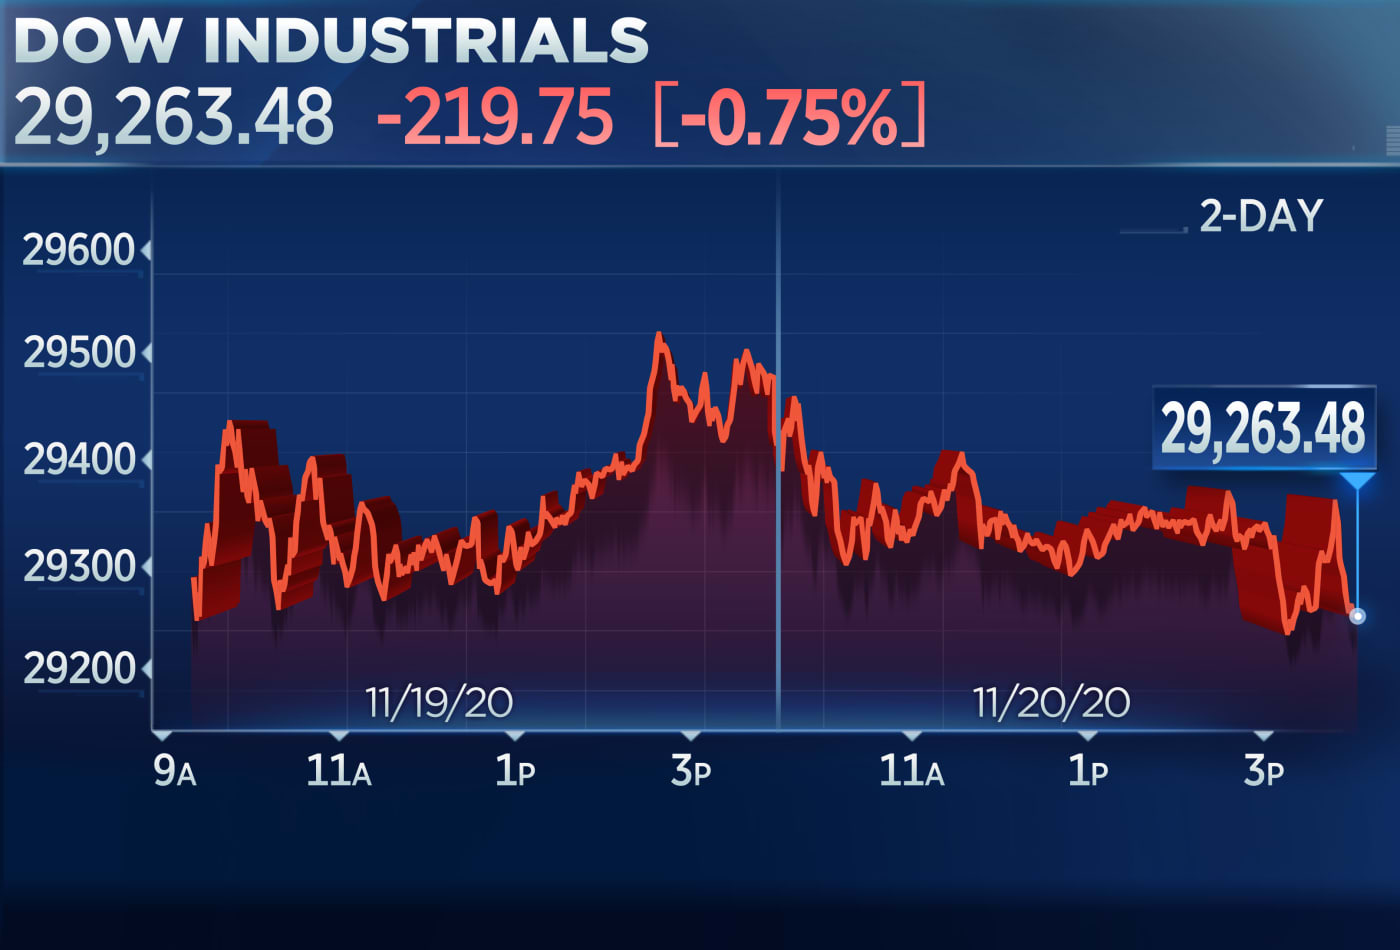 Dow closes more than 200 points lower to end down week amid concern over rising Covid cases